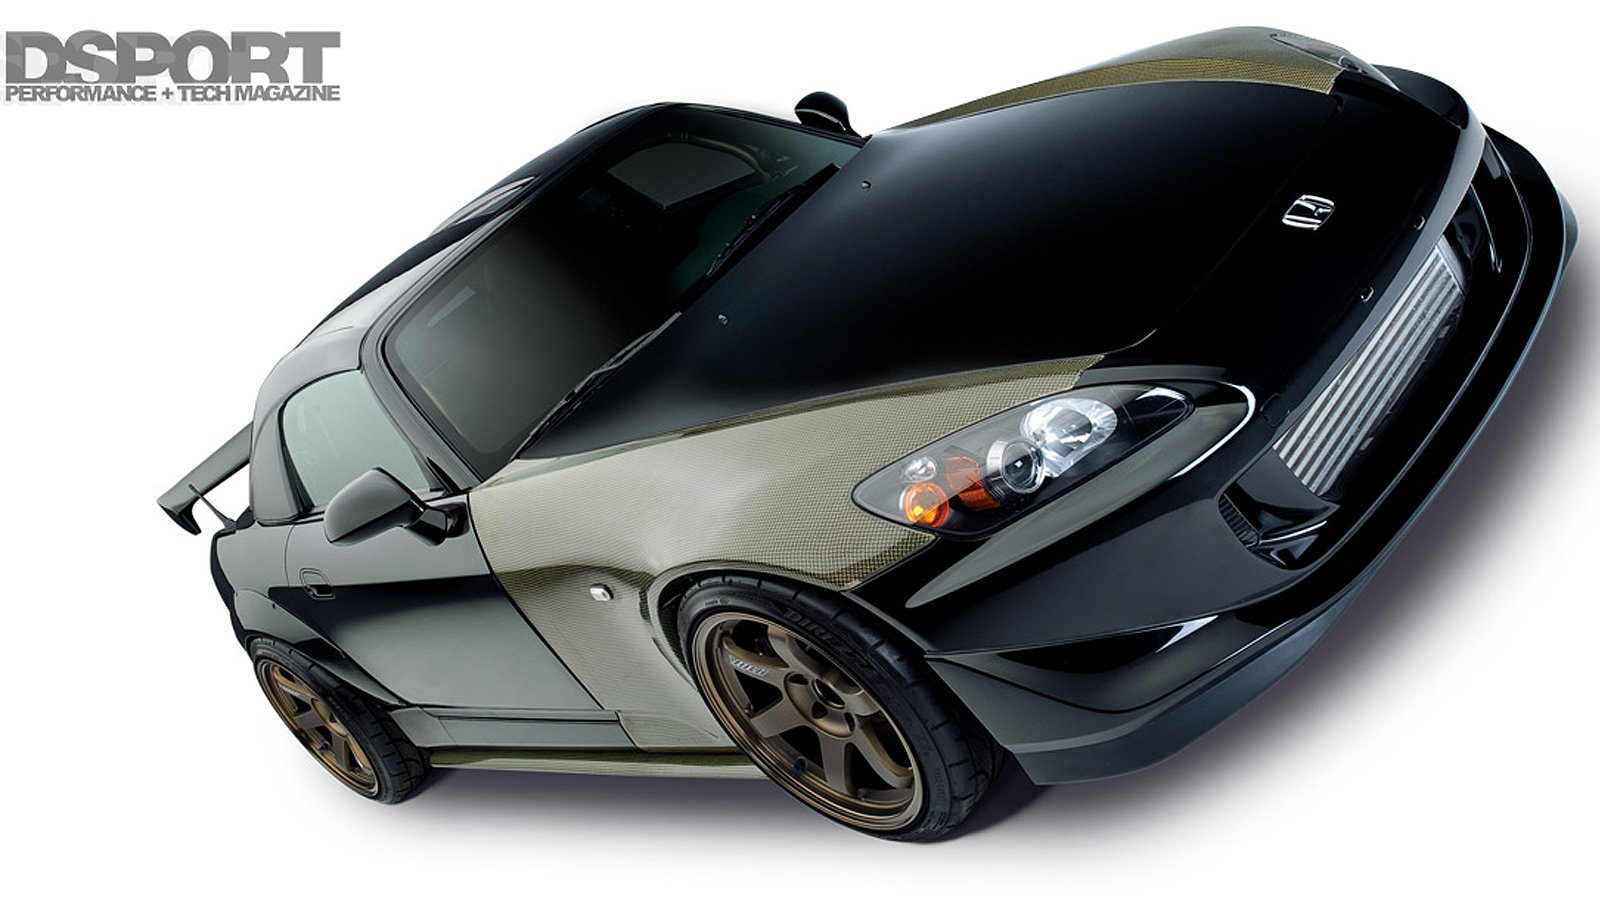 Some of the Best S2000 Builds Ever